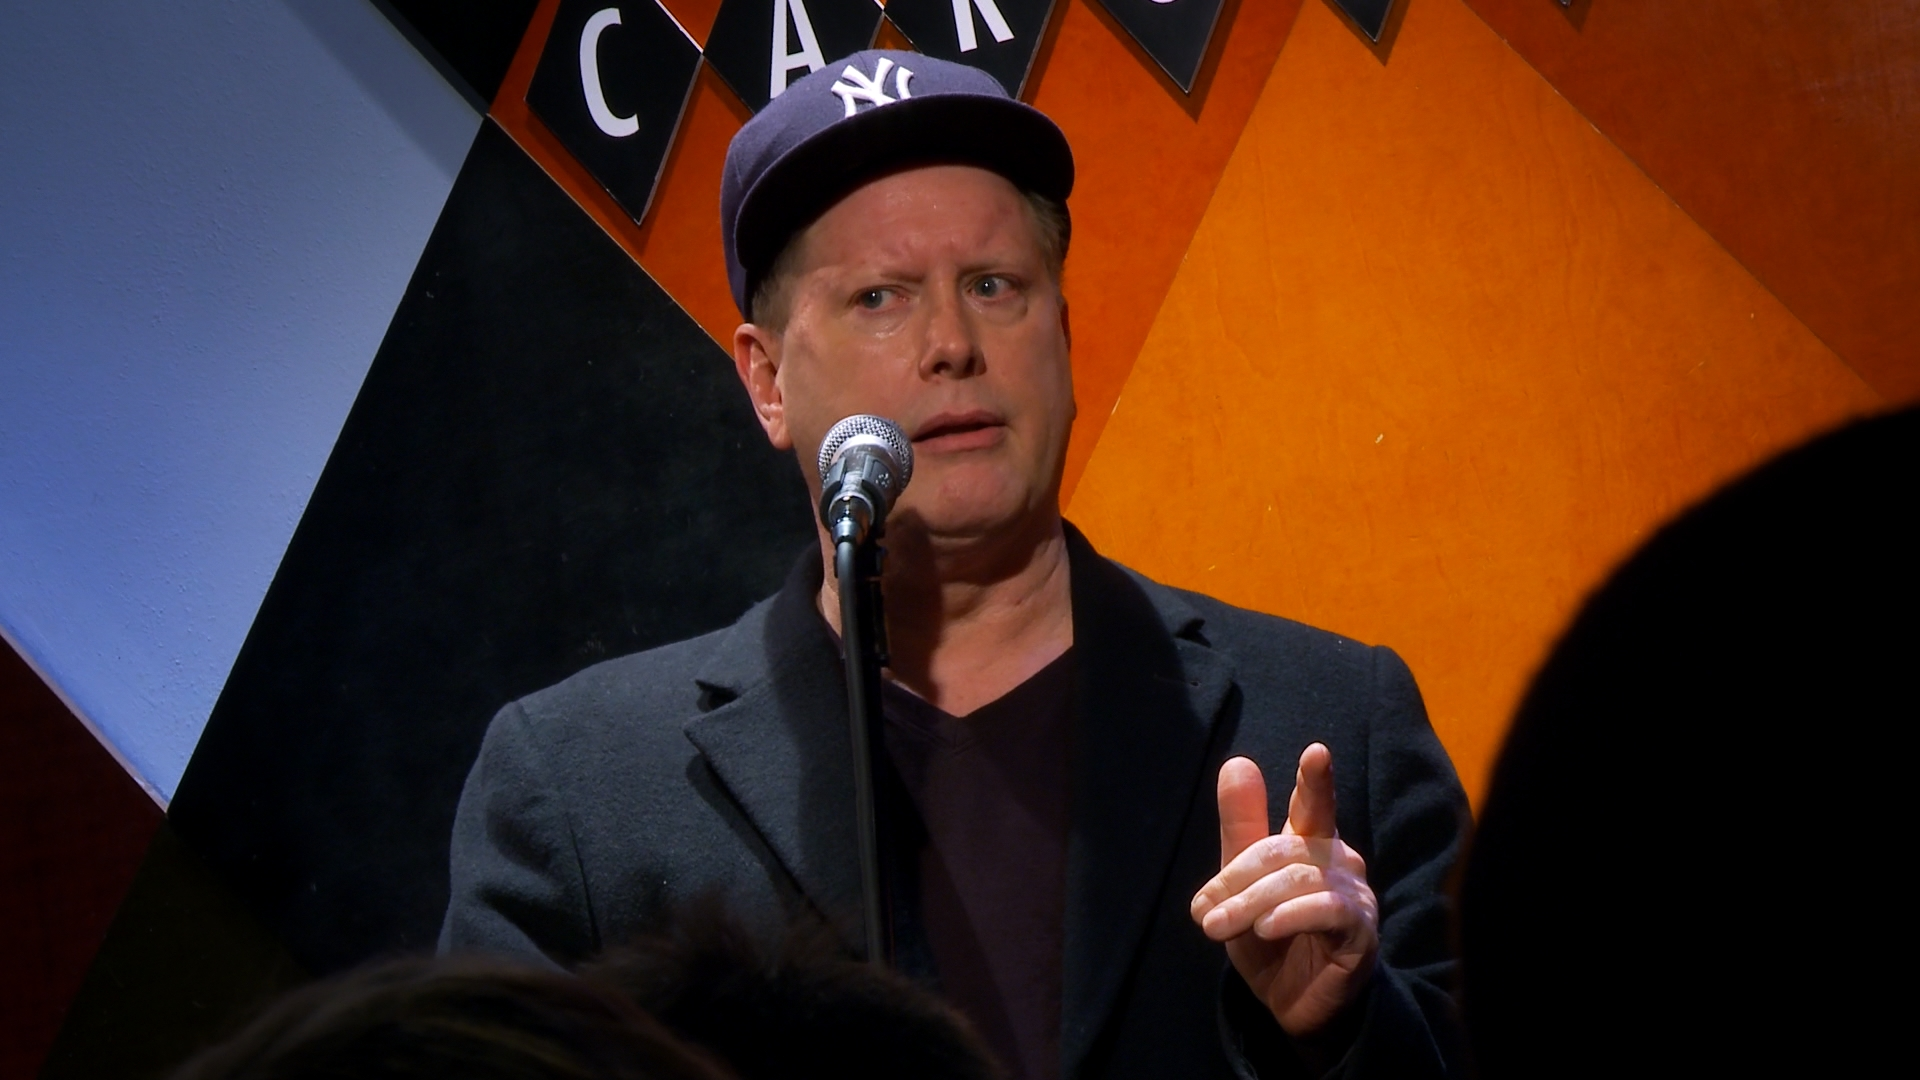 Darrell Hammond doing stand-up comedy - From the documentary film Cracked Up.